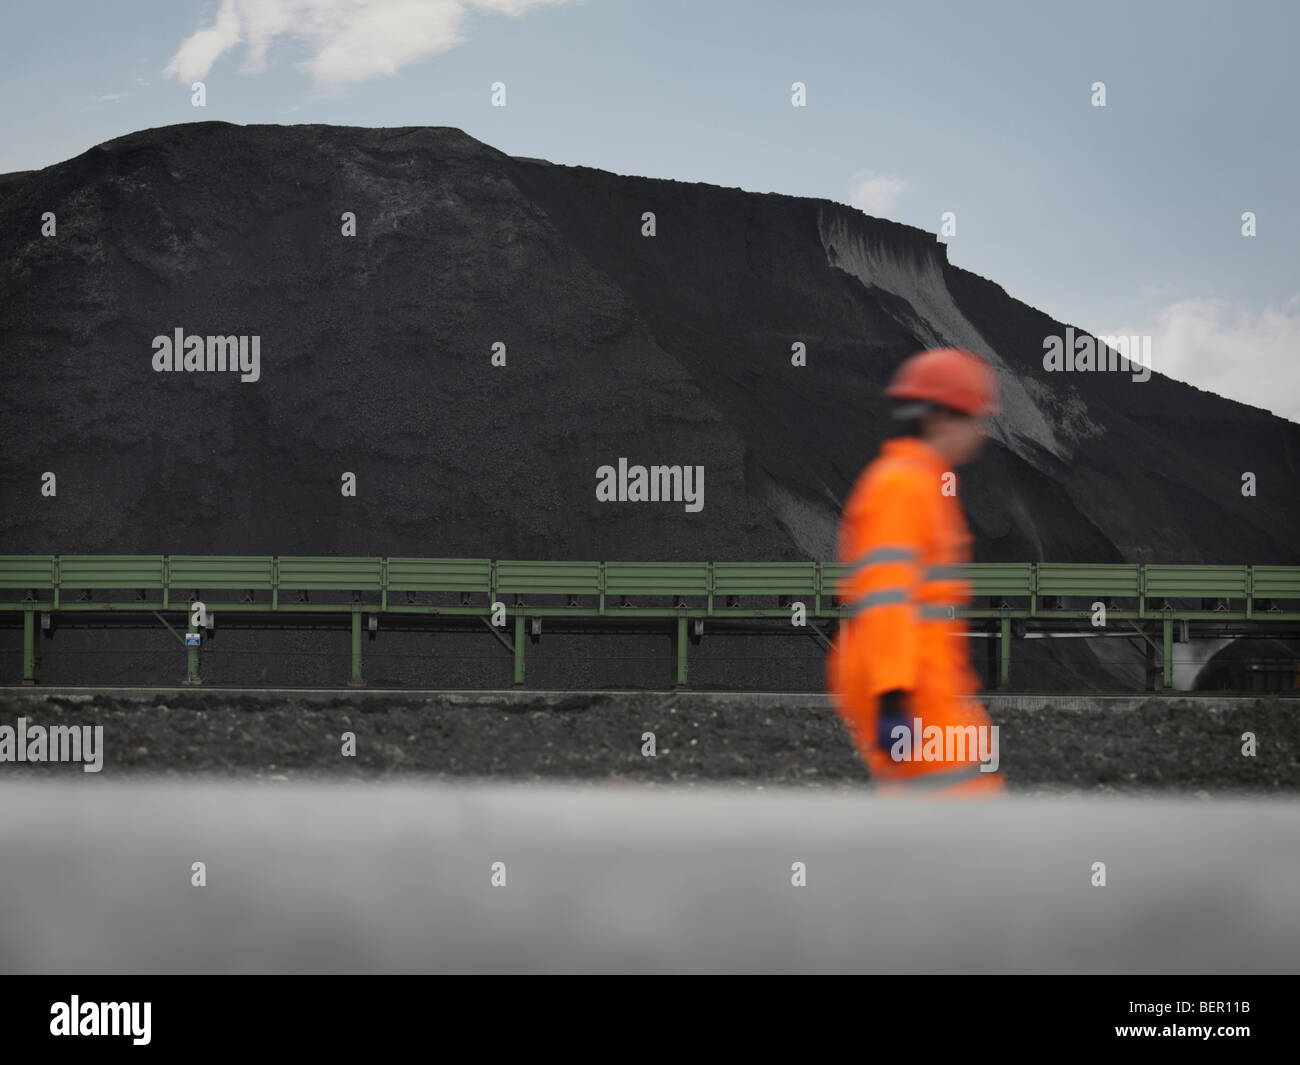 Port Worker With Mound Of Coal - Stock Image